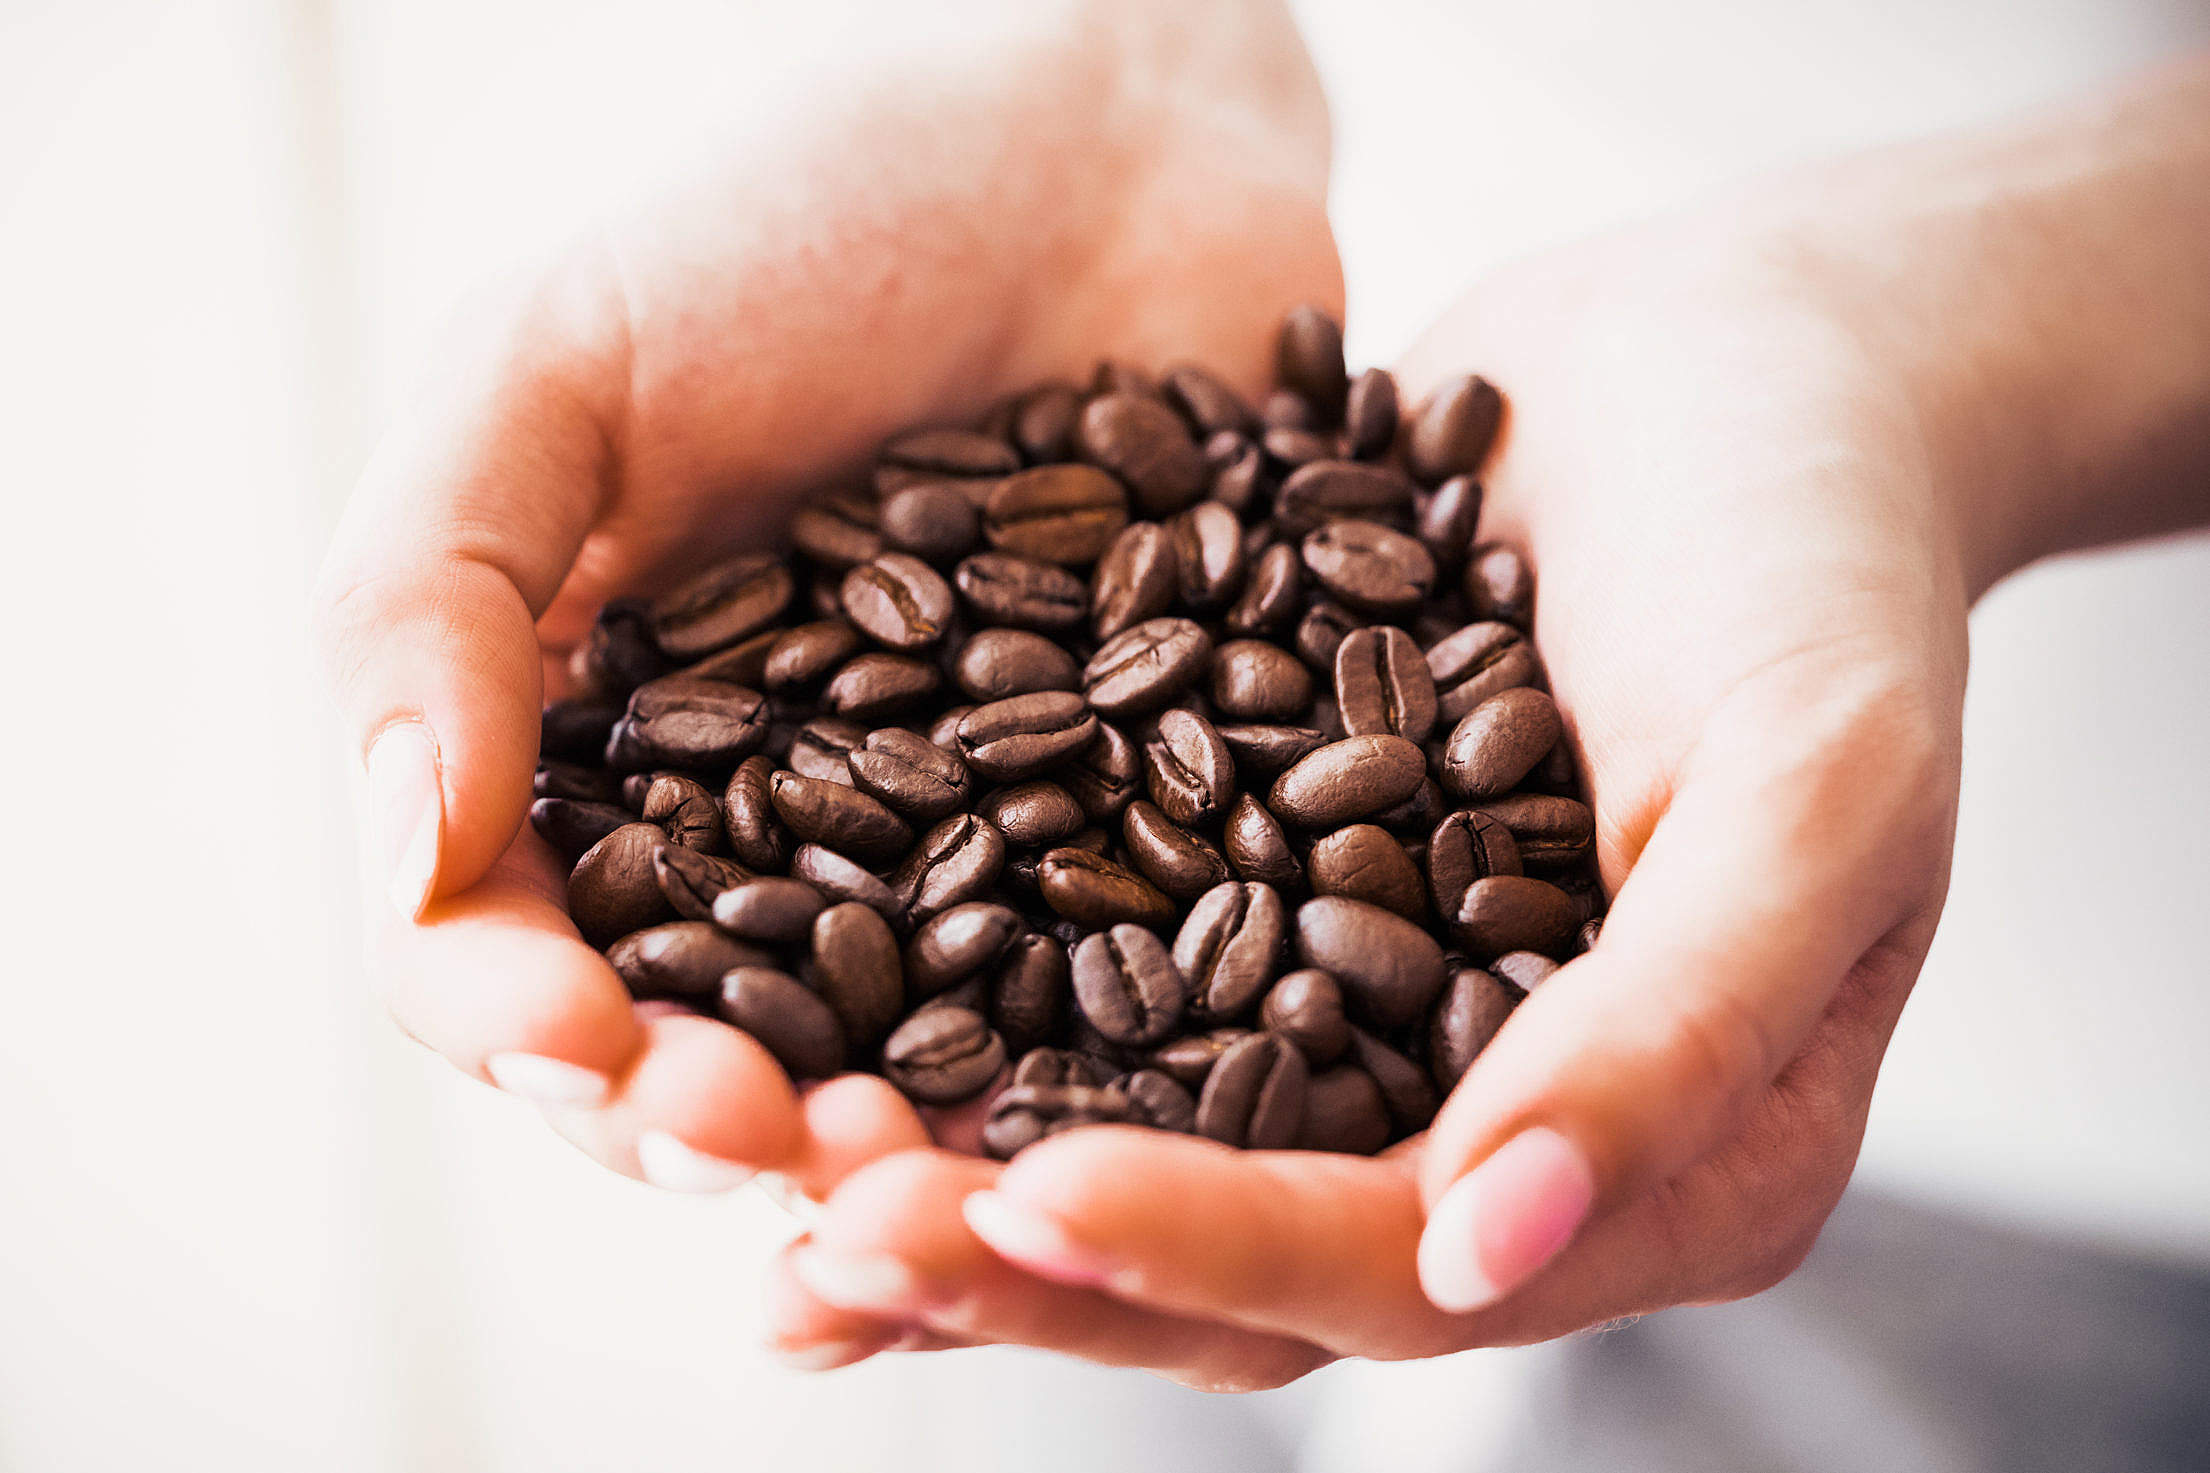 Woman Holding Handful of Roasted Coffee Beans Free Stock Photo